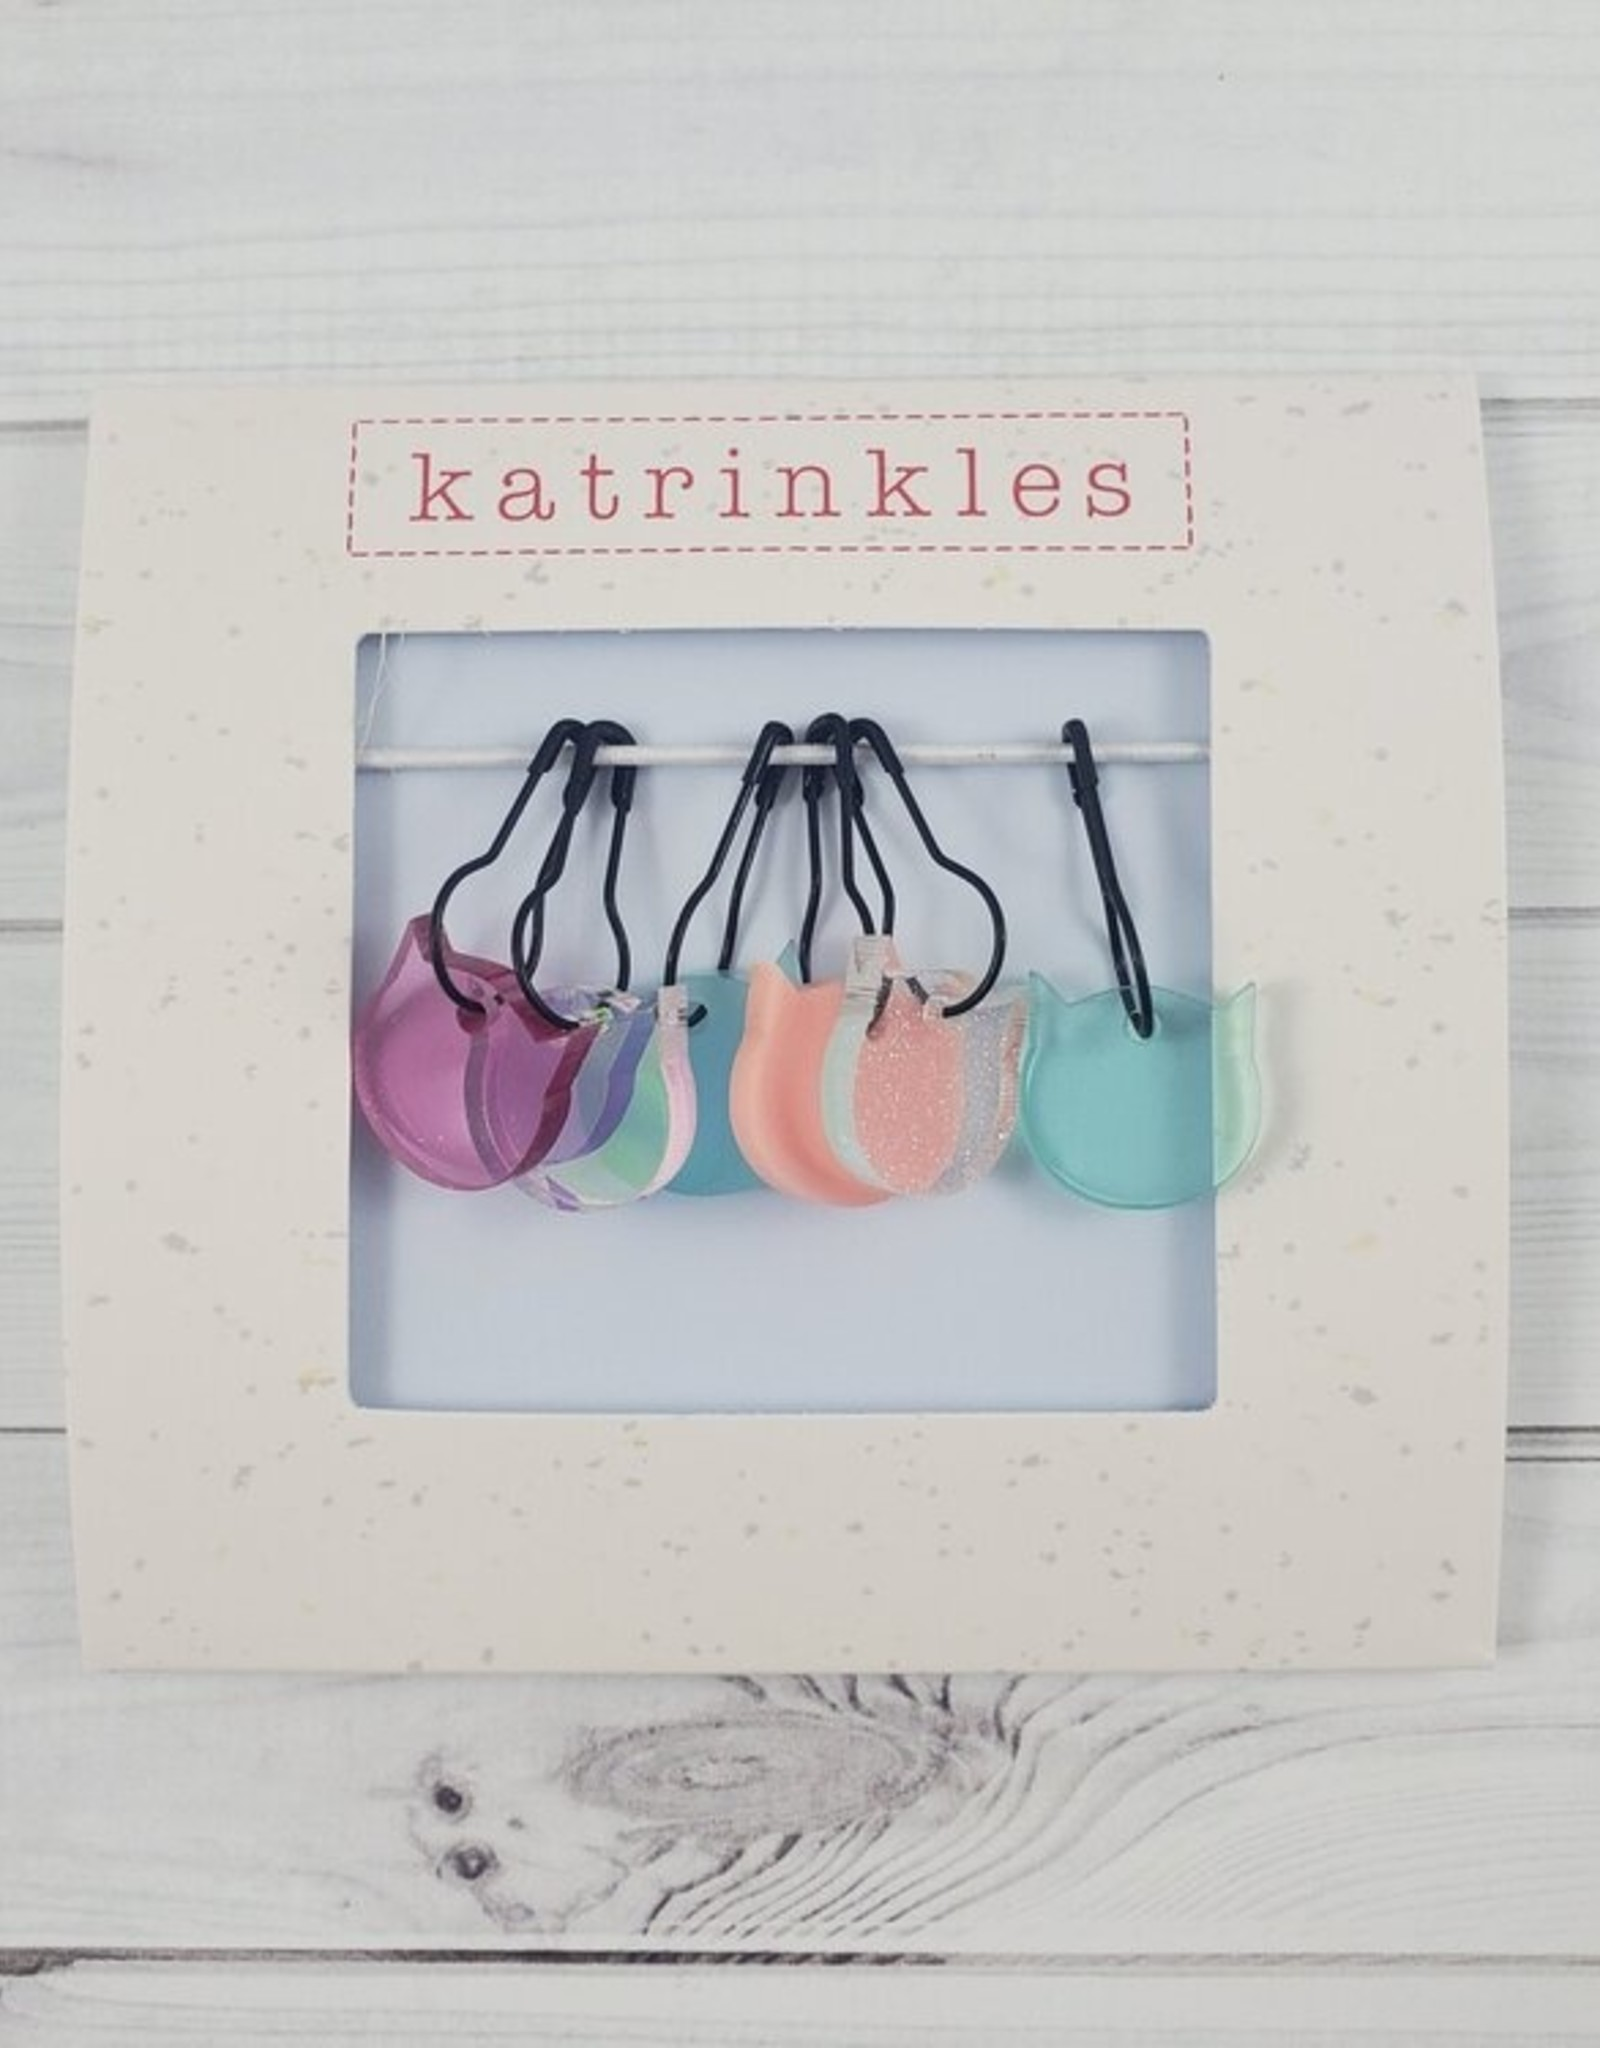 Katrinkles Cat-rinkles Cat Collection - Acrylic Stitch Markers